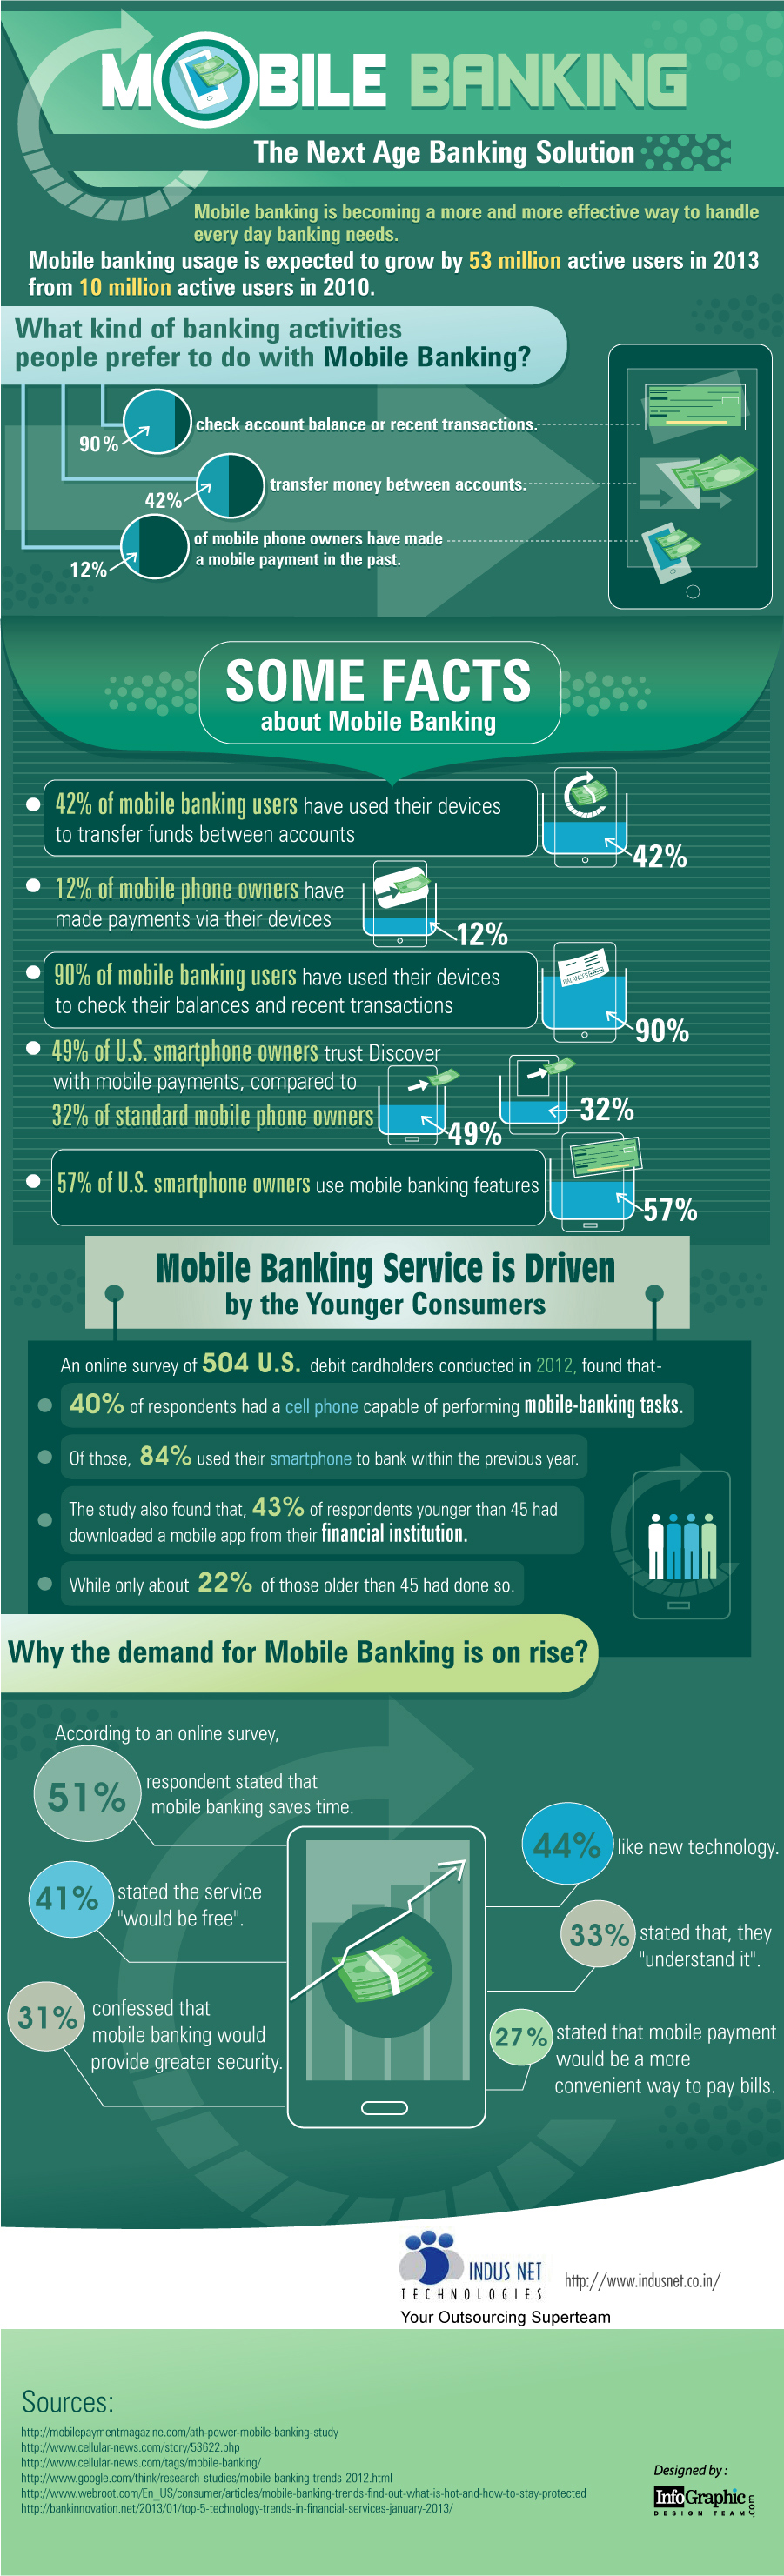 Mobile Banking - The Next Age Banking Solution